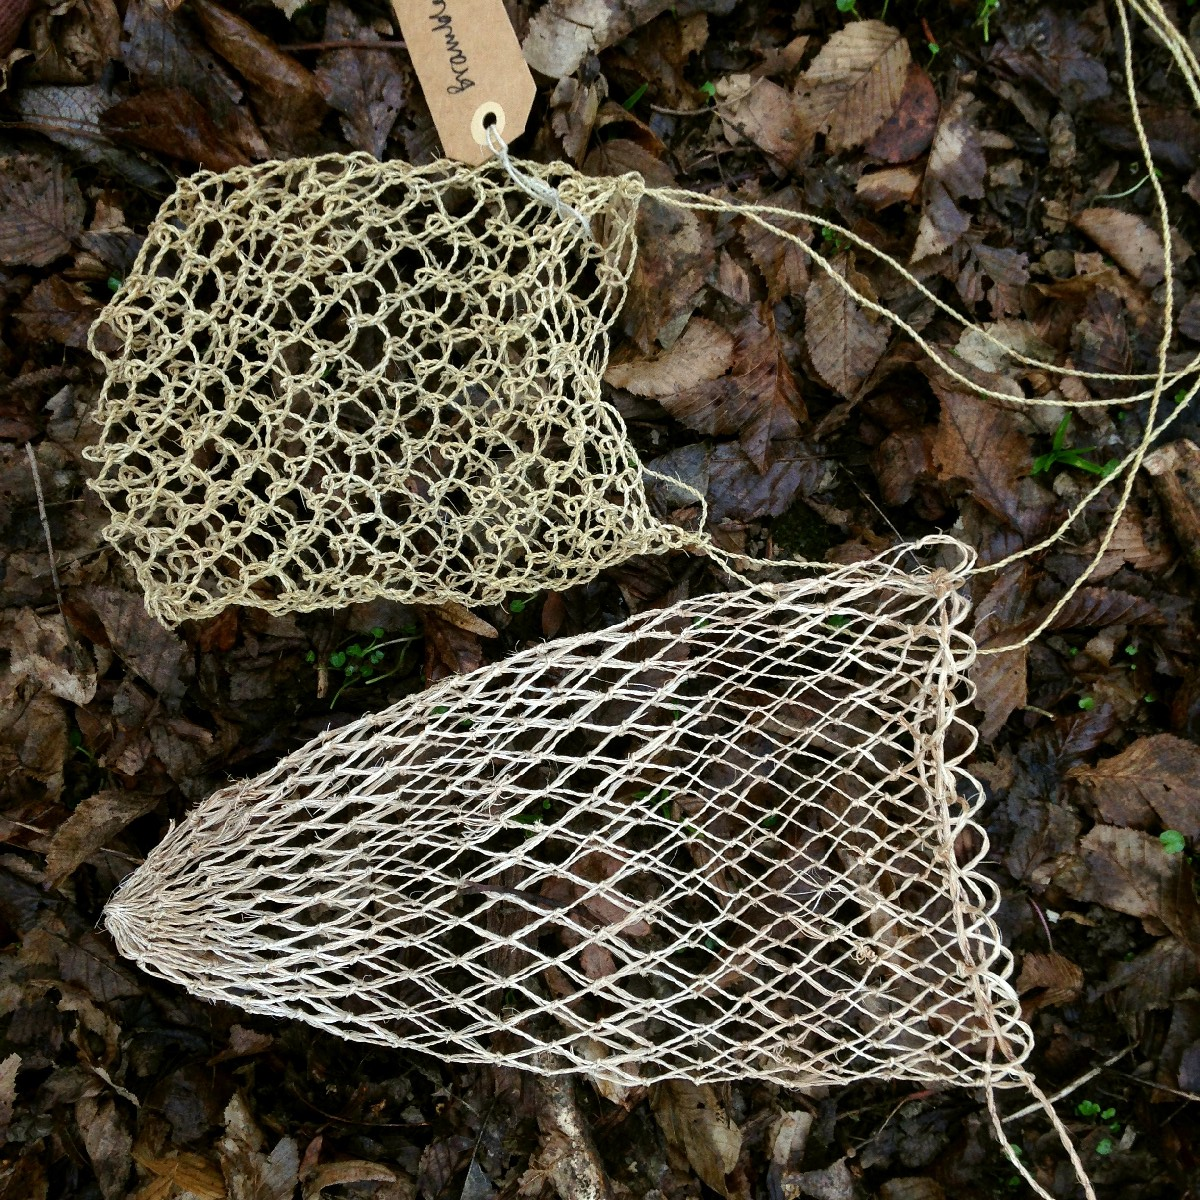 netted bags cordage course sussex